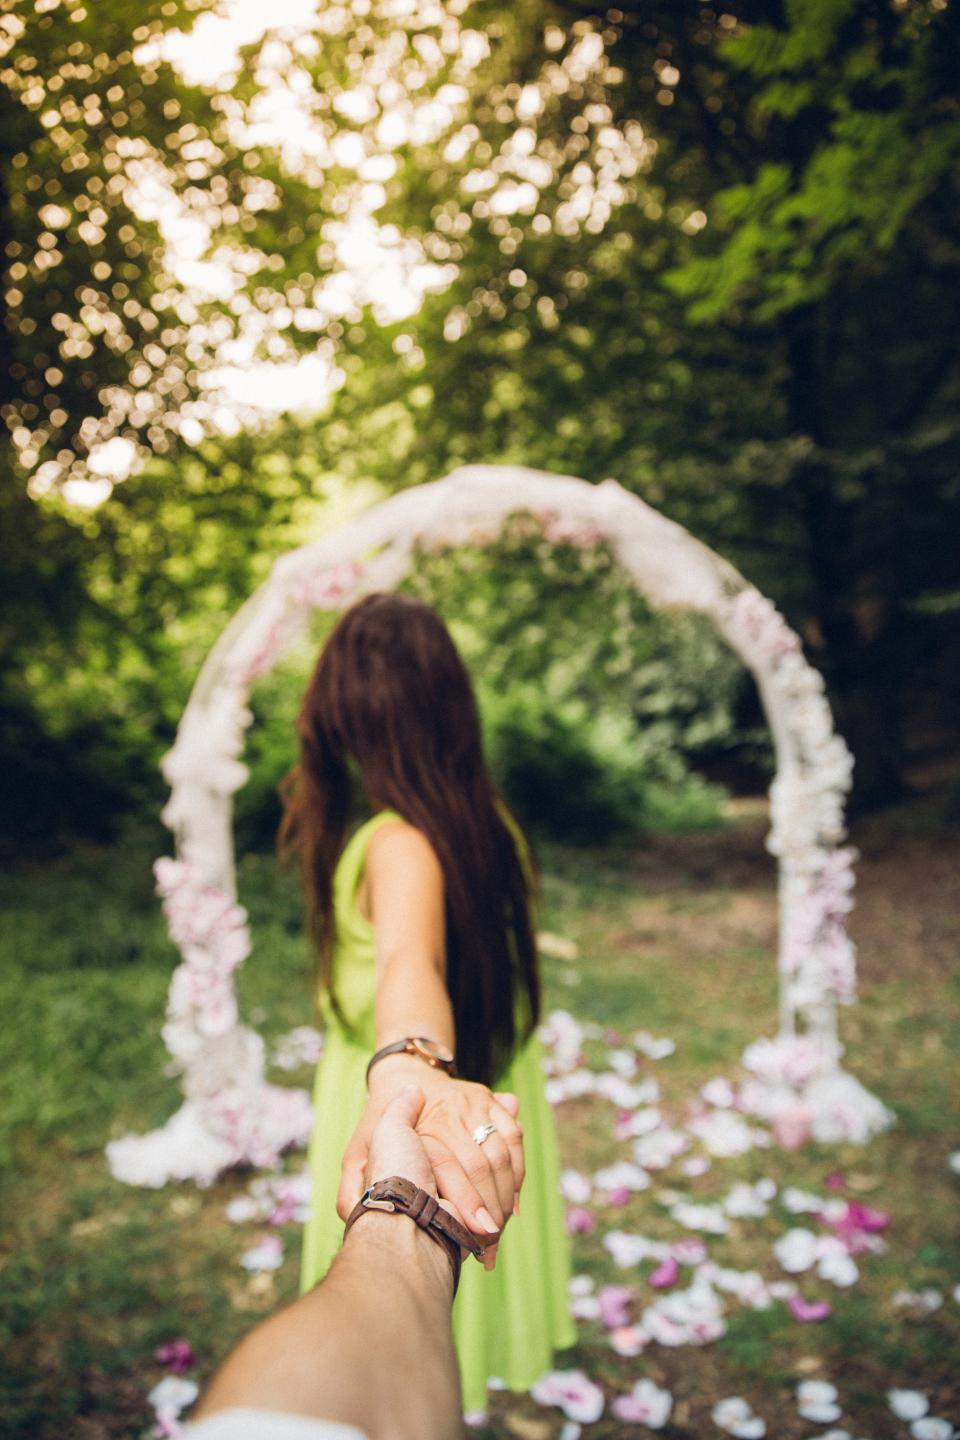 people girl woman holding hands watch ring blur bokeh outdoor green trees plant